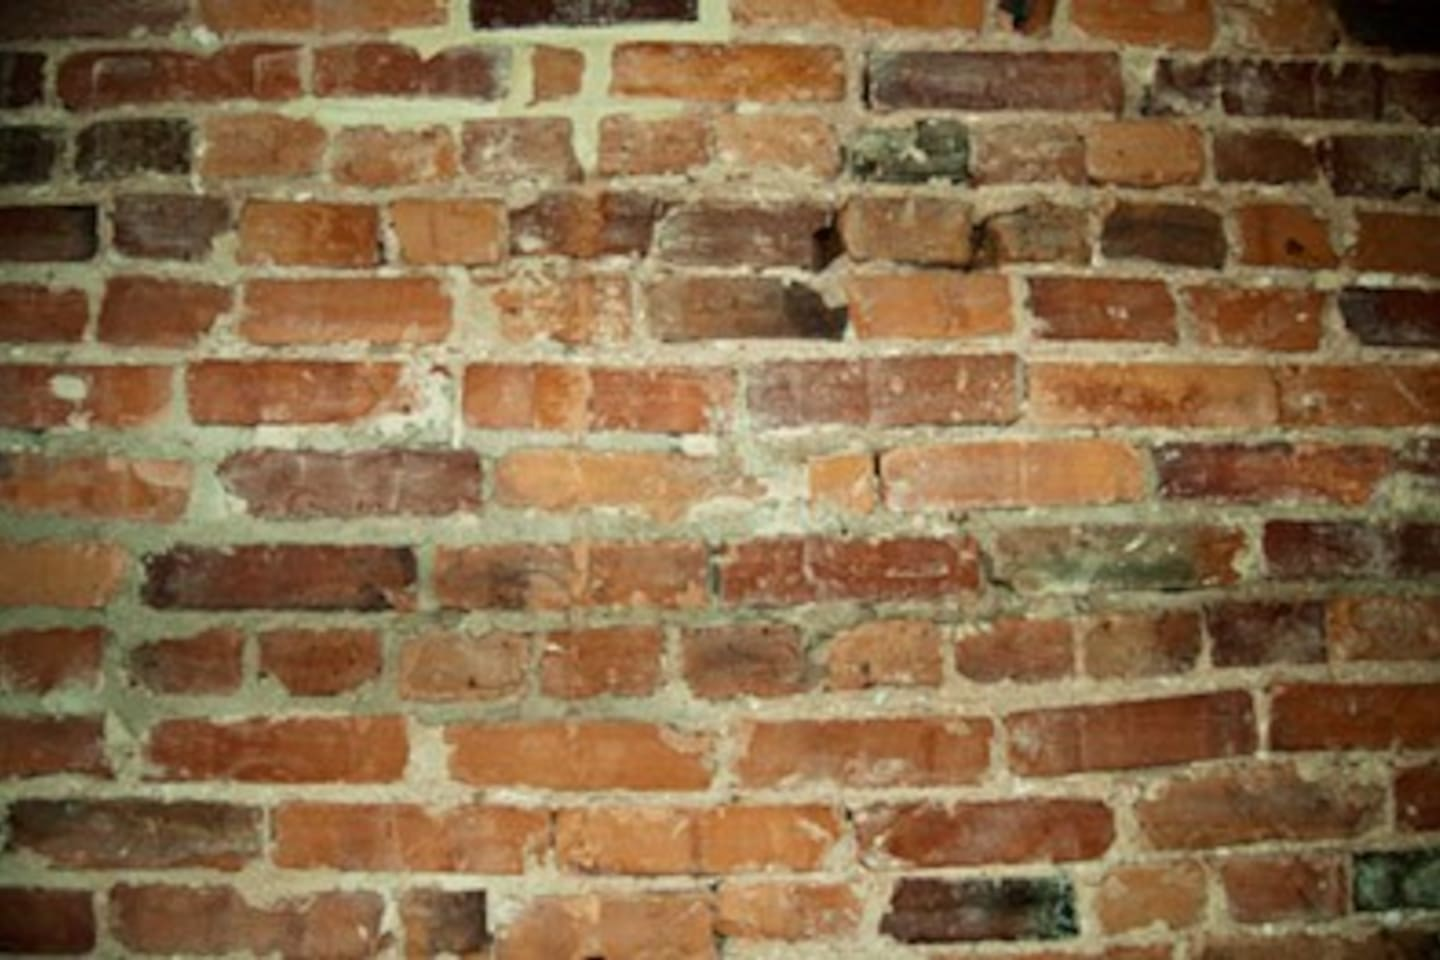 This is a photo of exposed brick.